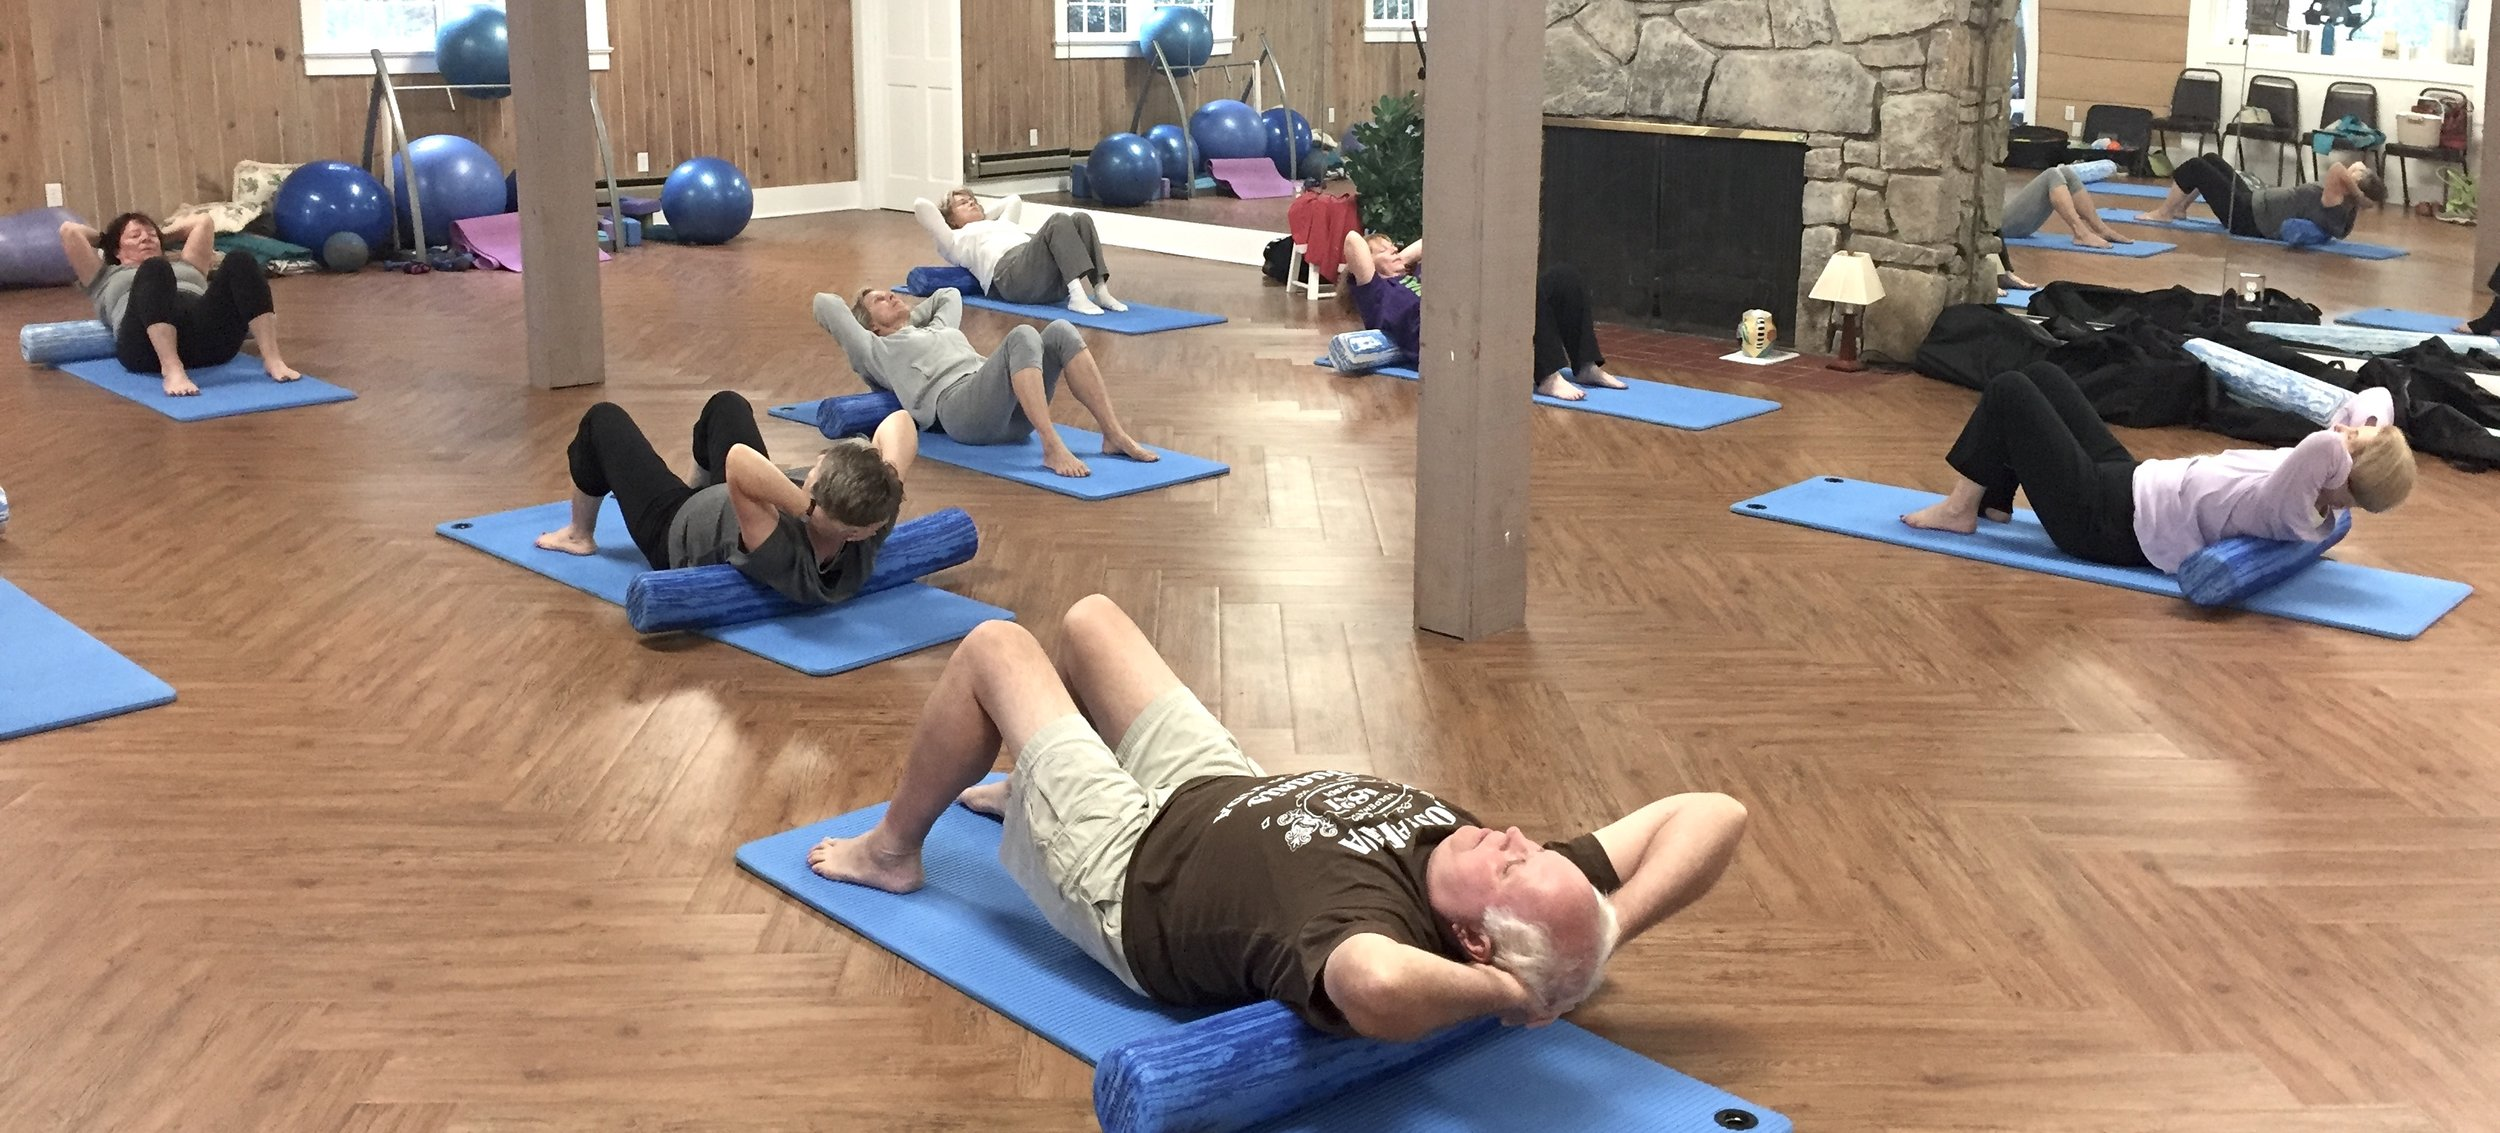 Group Mat Classes - Ongoing at Laurel Ridge Country Club. You do not have to be a member of the club or its fitness center to attend Mat Classes. All are welcome!